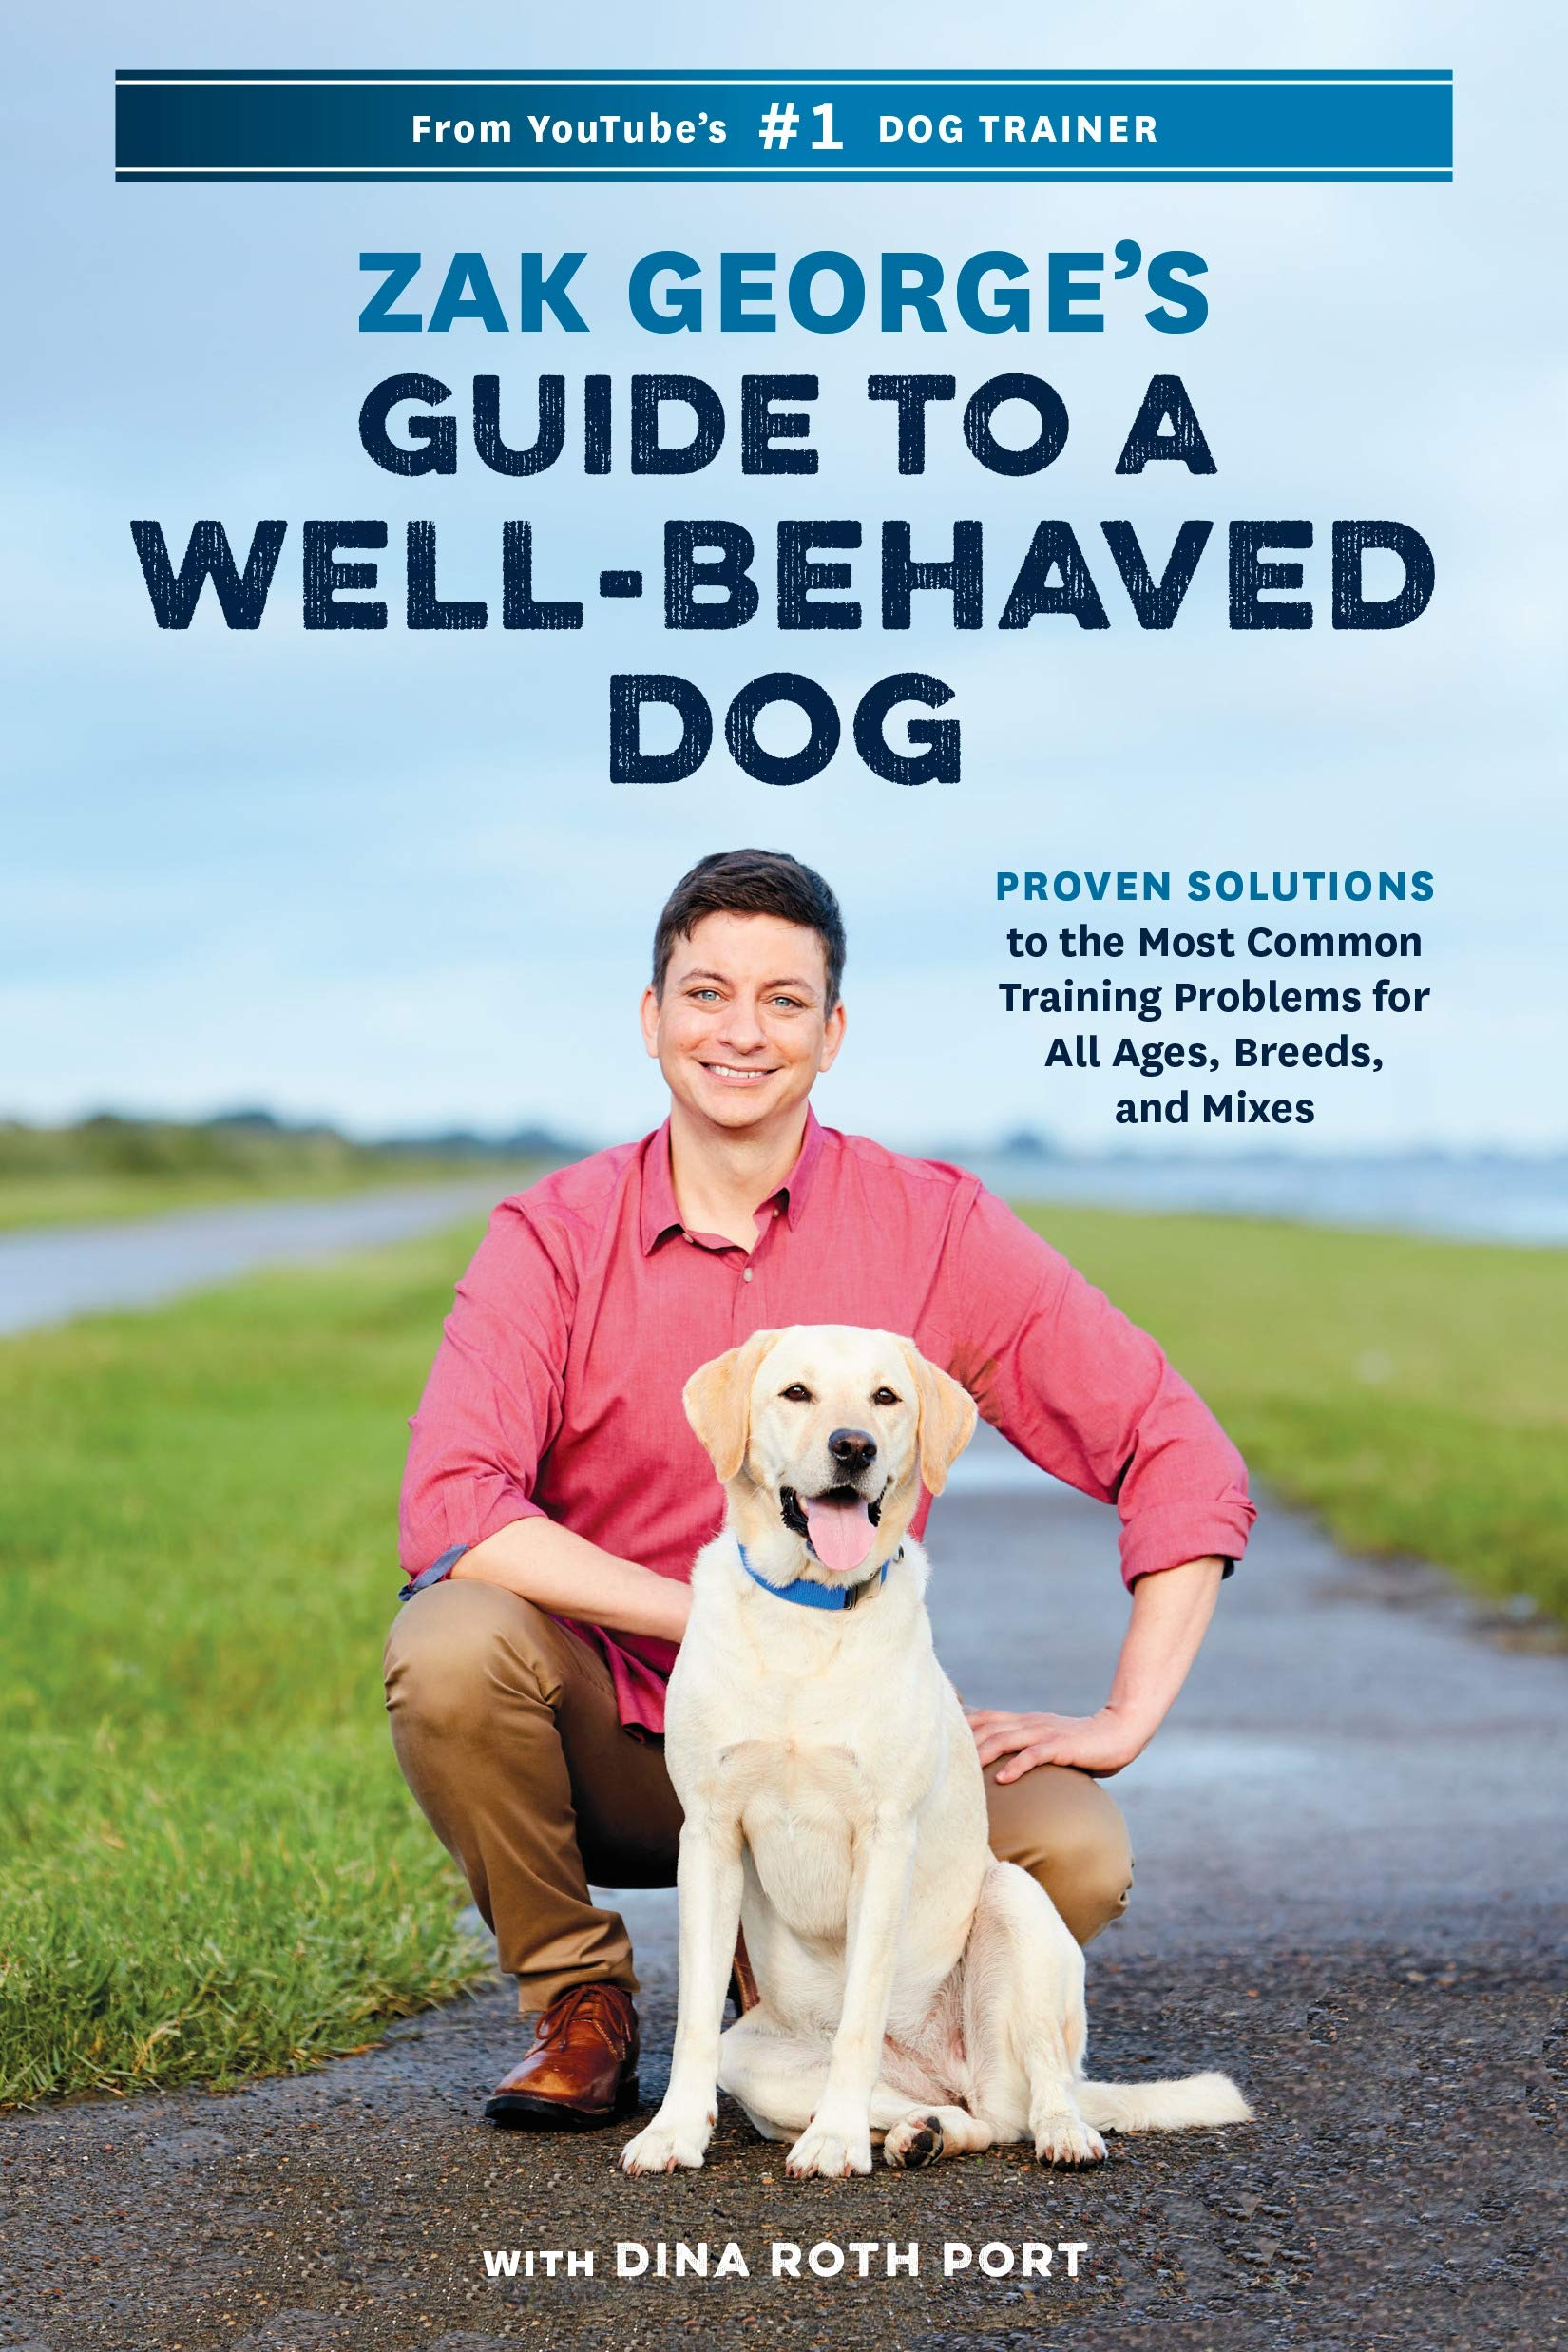 Zak George's Guide to a Well-Behaved Dog: Proven Solutions to the Most Common Training Problems for All Ages, Breeds, and Mixes by Ten Speed Press